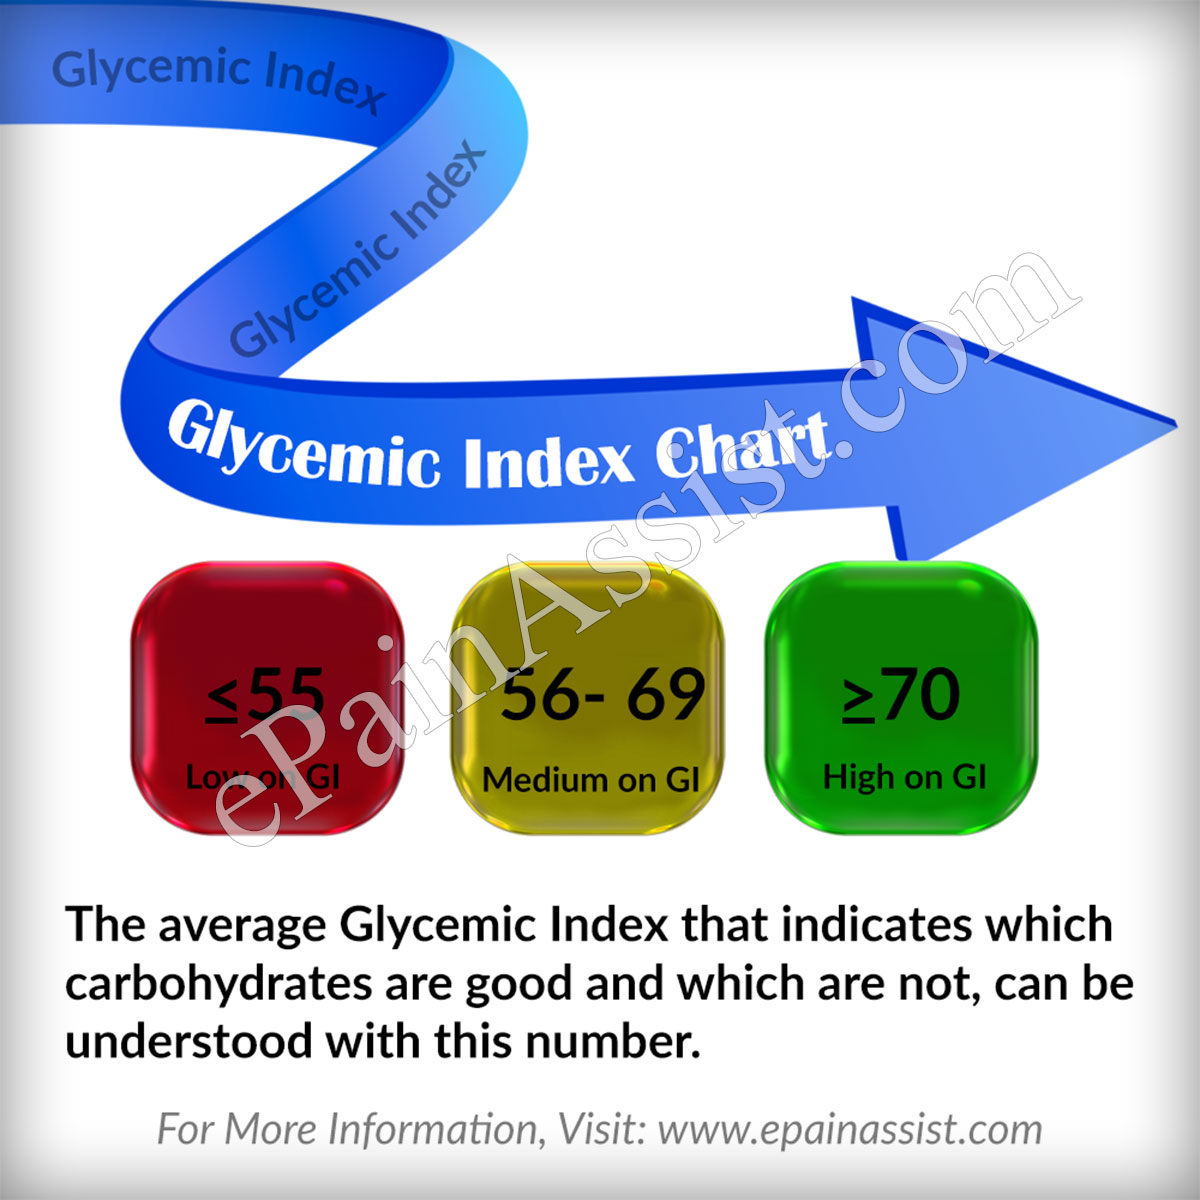 The average Glycemic Index that indicates which carbohydrates are good